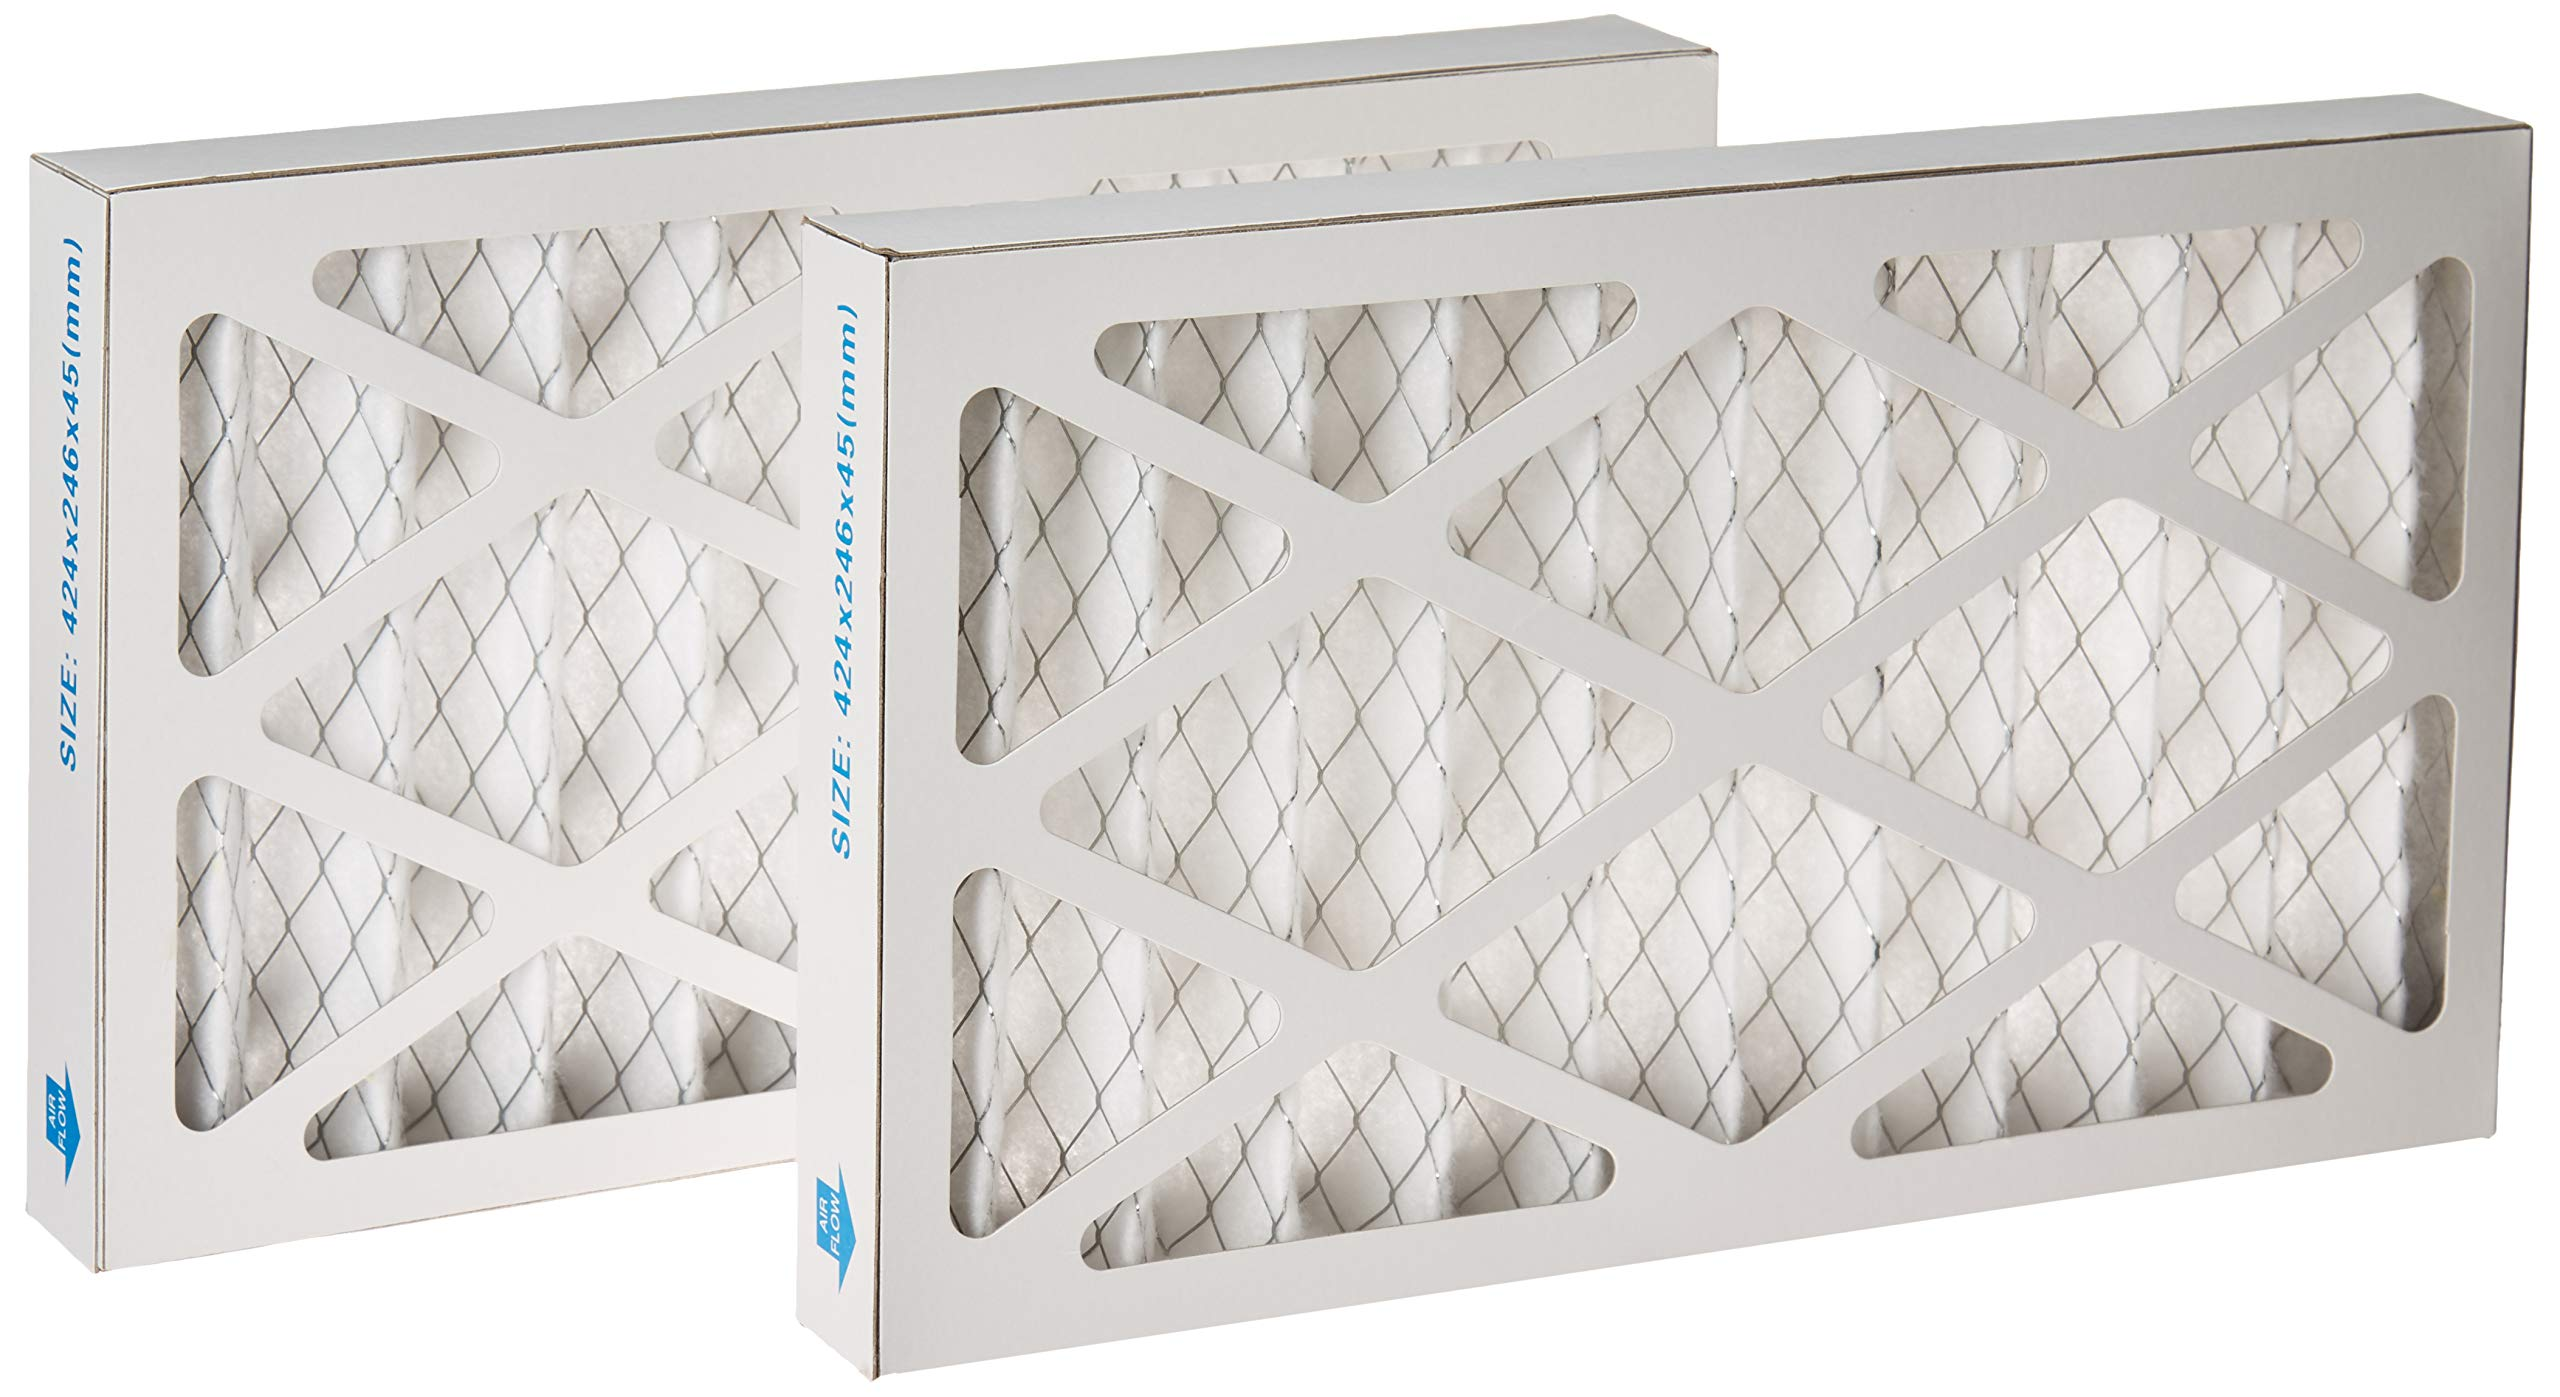 WEN 90243-027-2 5-Micron Outer Air Filters, 2-Pack (for the WEN 3410 Air Filtration System)